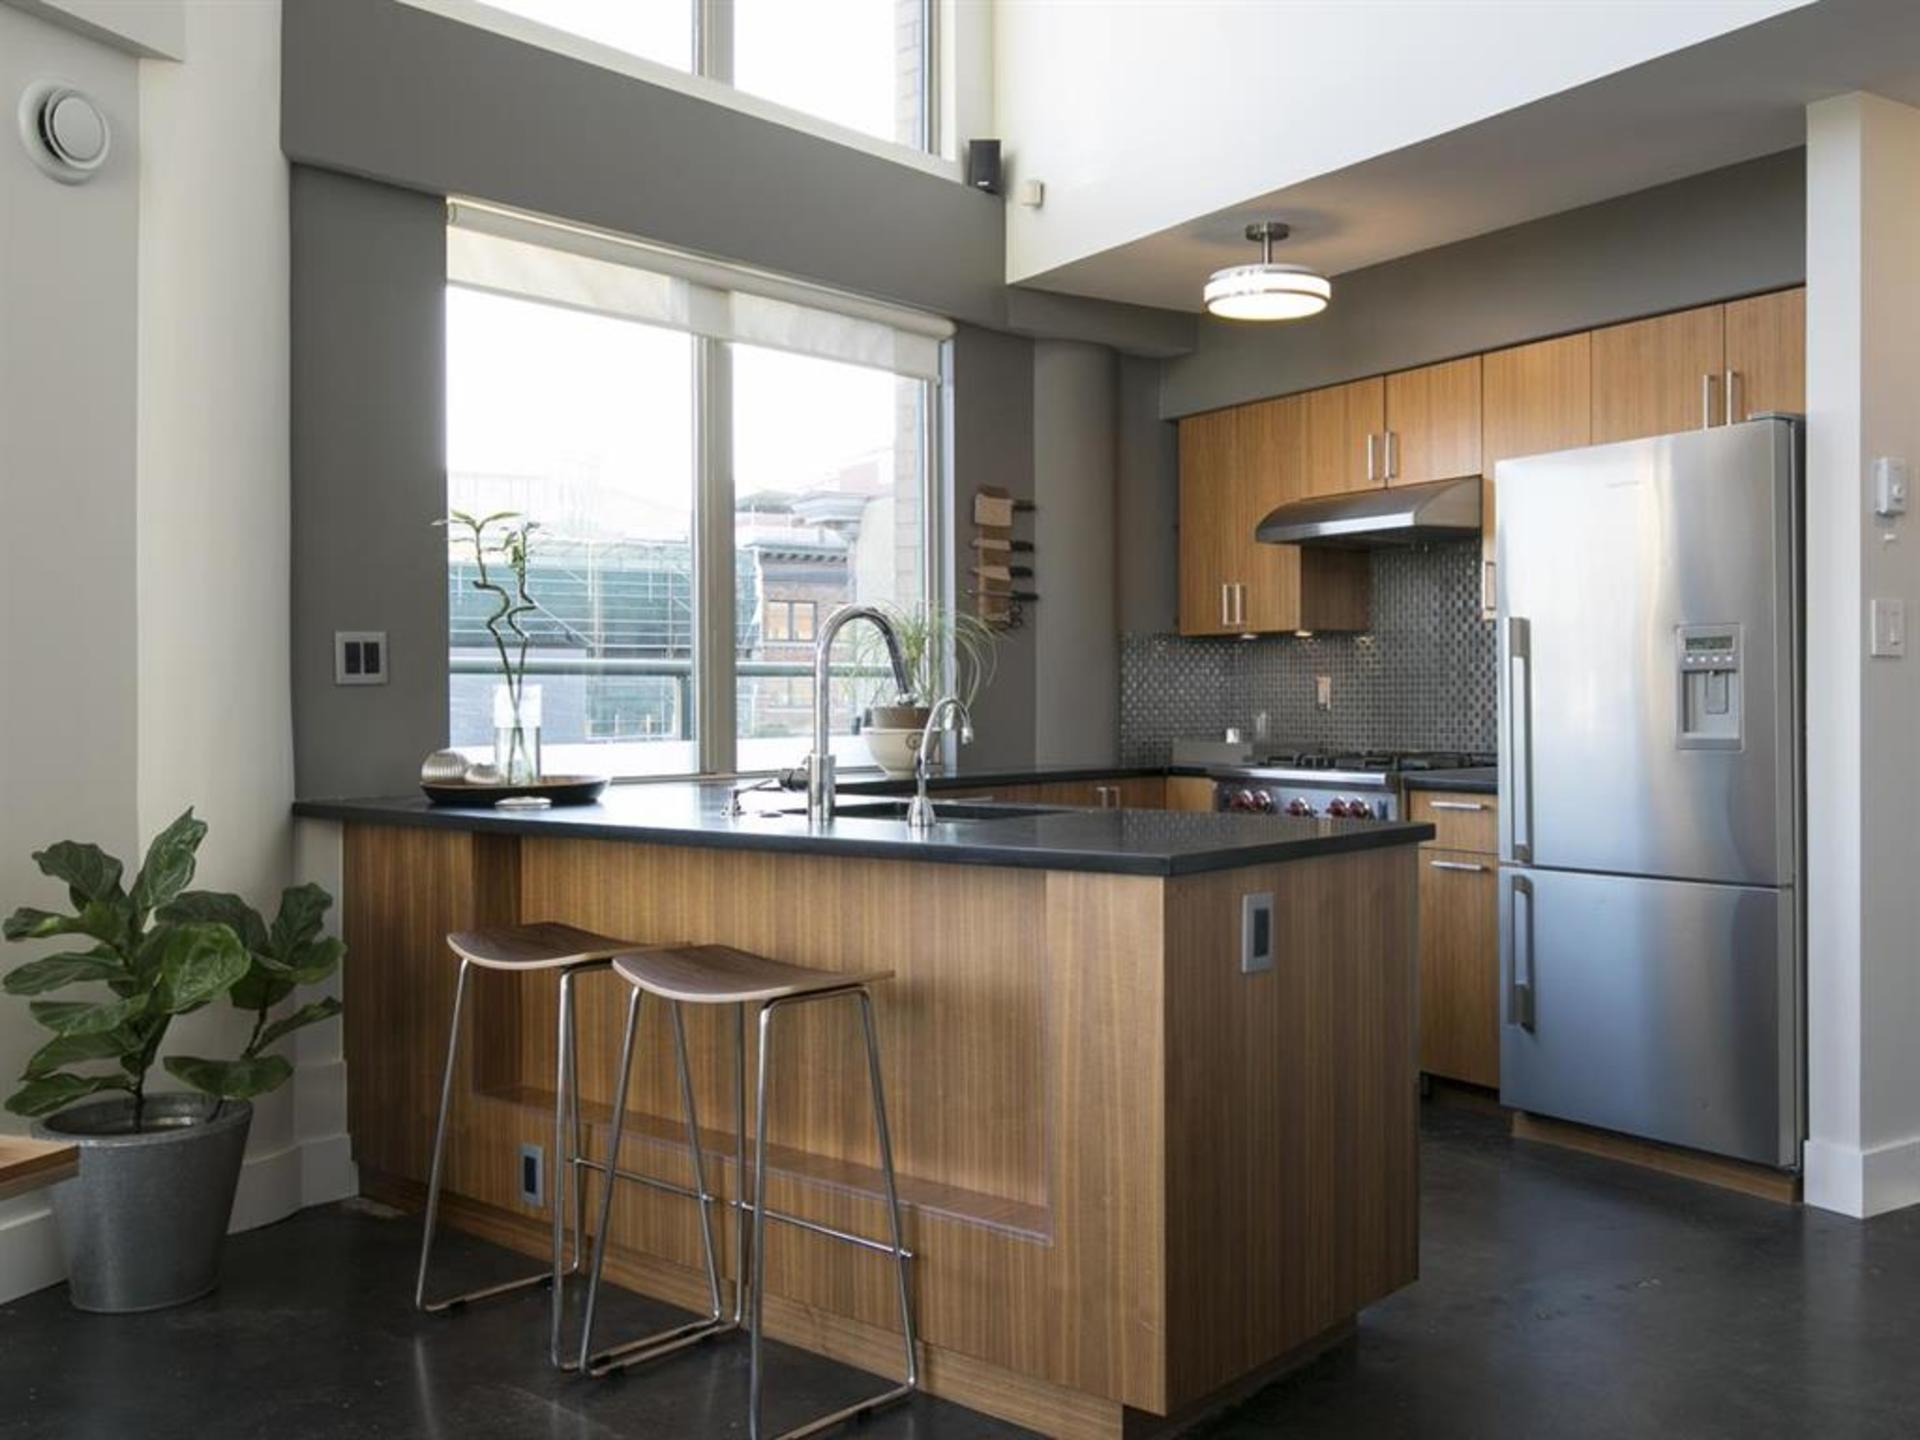 262039623-4 at 606 - 55 Alexander Street, Downtown VE, Vancouver East